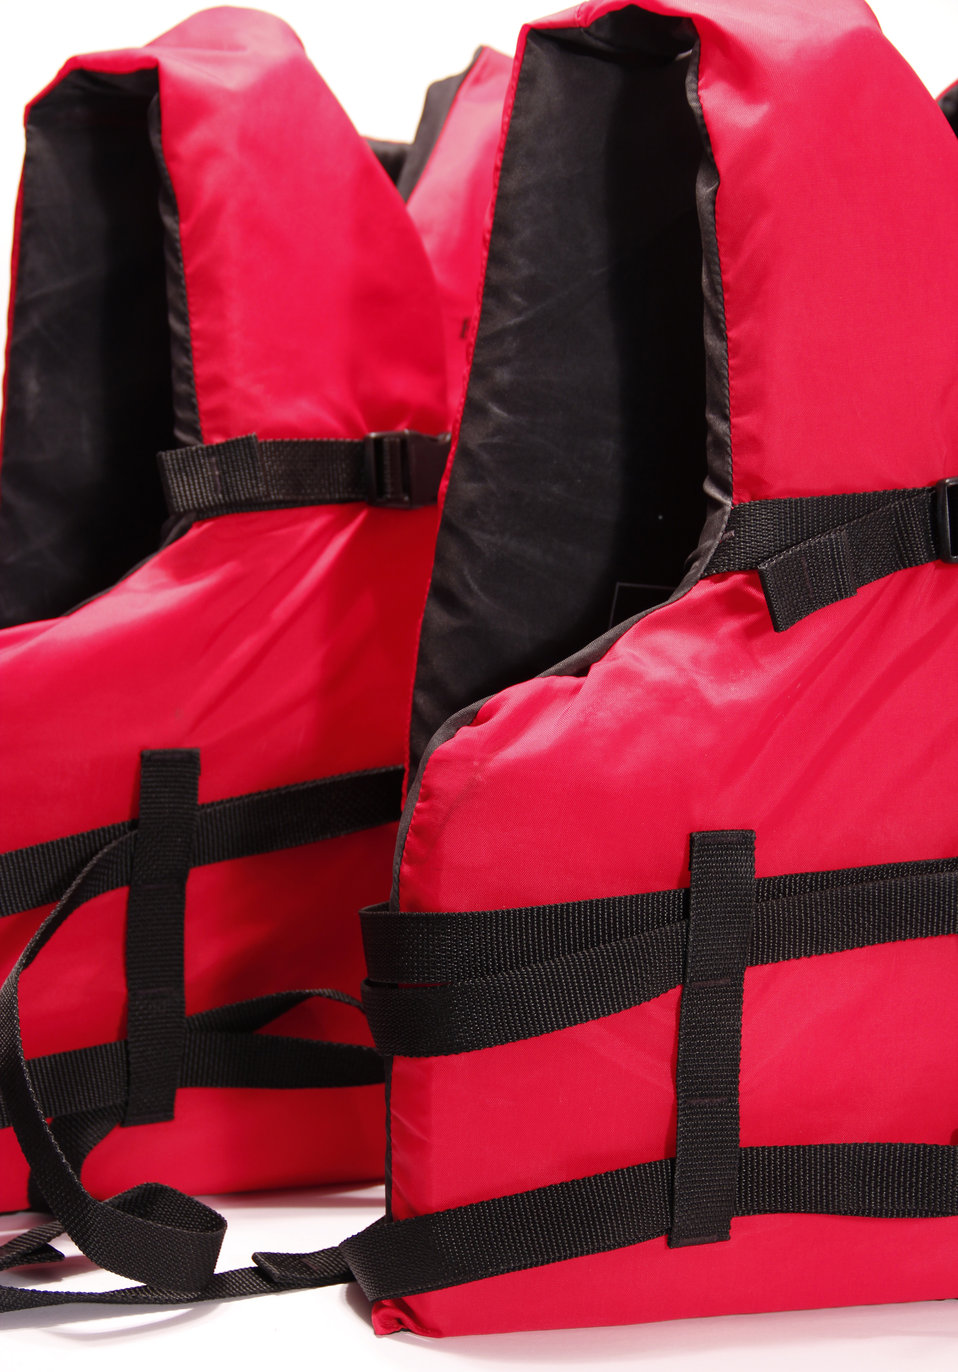 This photograph depicts two life vests, also known as life jackets, that displayed a bright red exterior, and were lined with a black interi